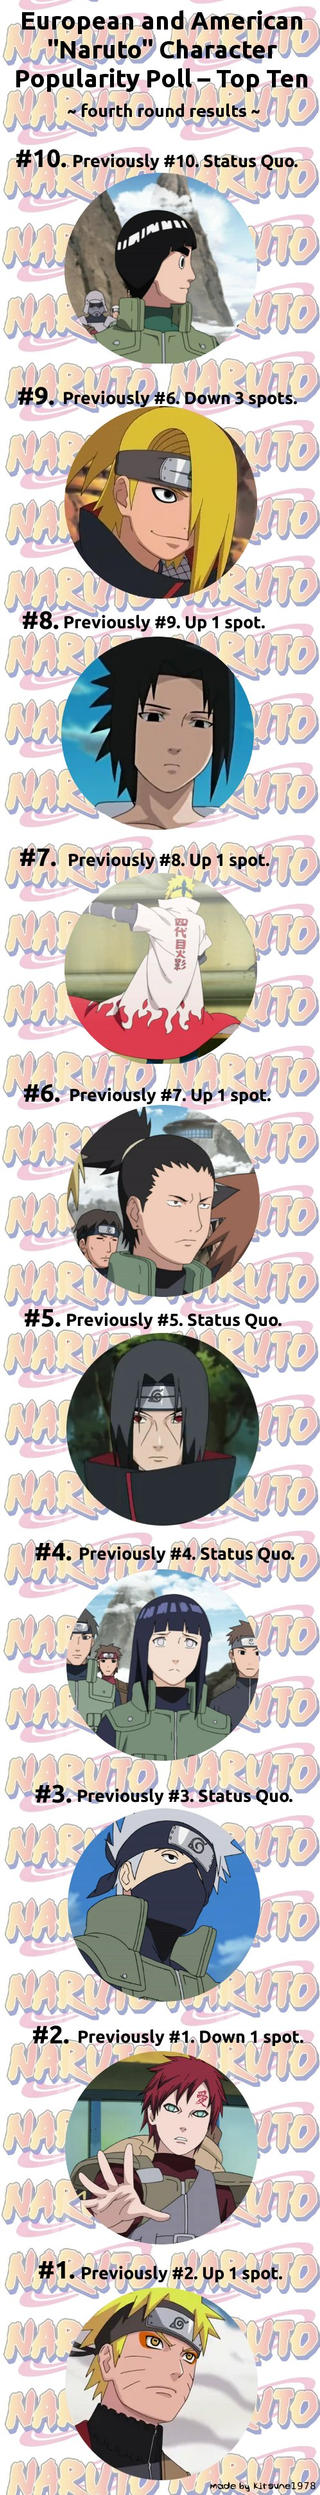 Naruto Poll - fourth round results by NarutoPoll